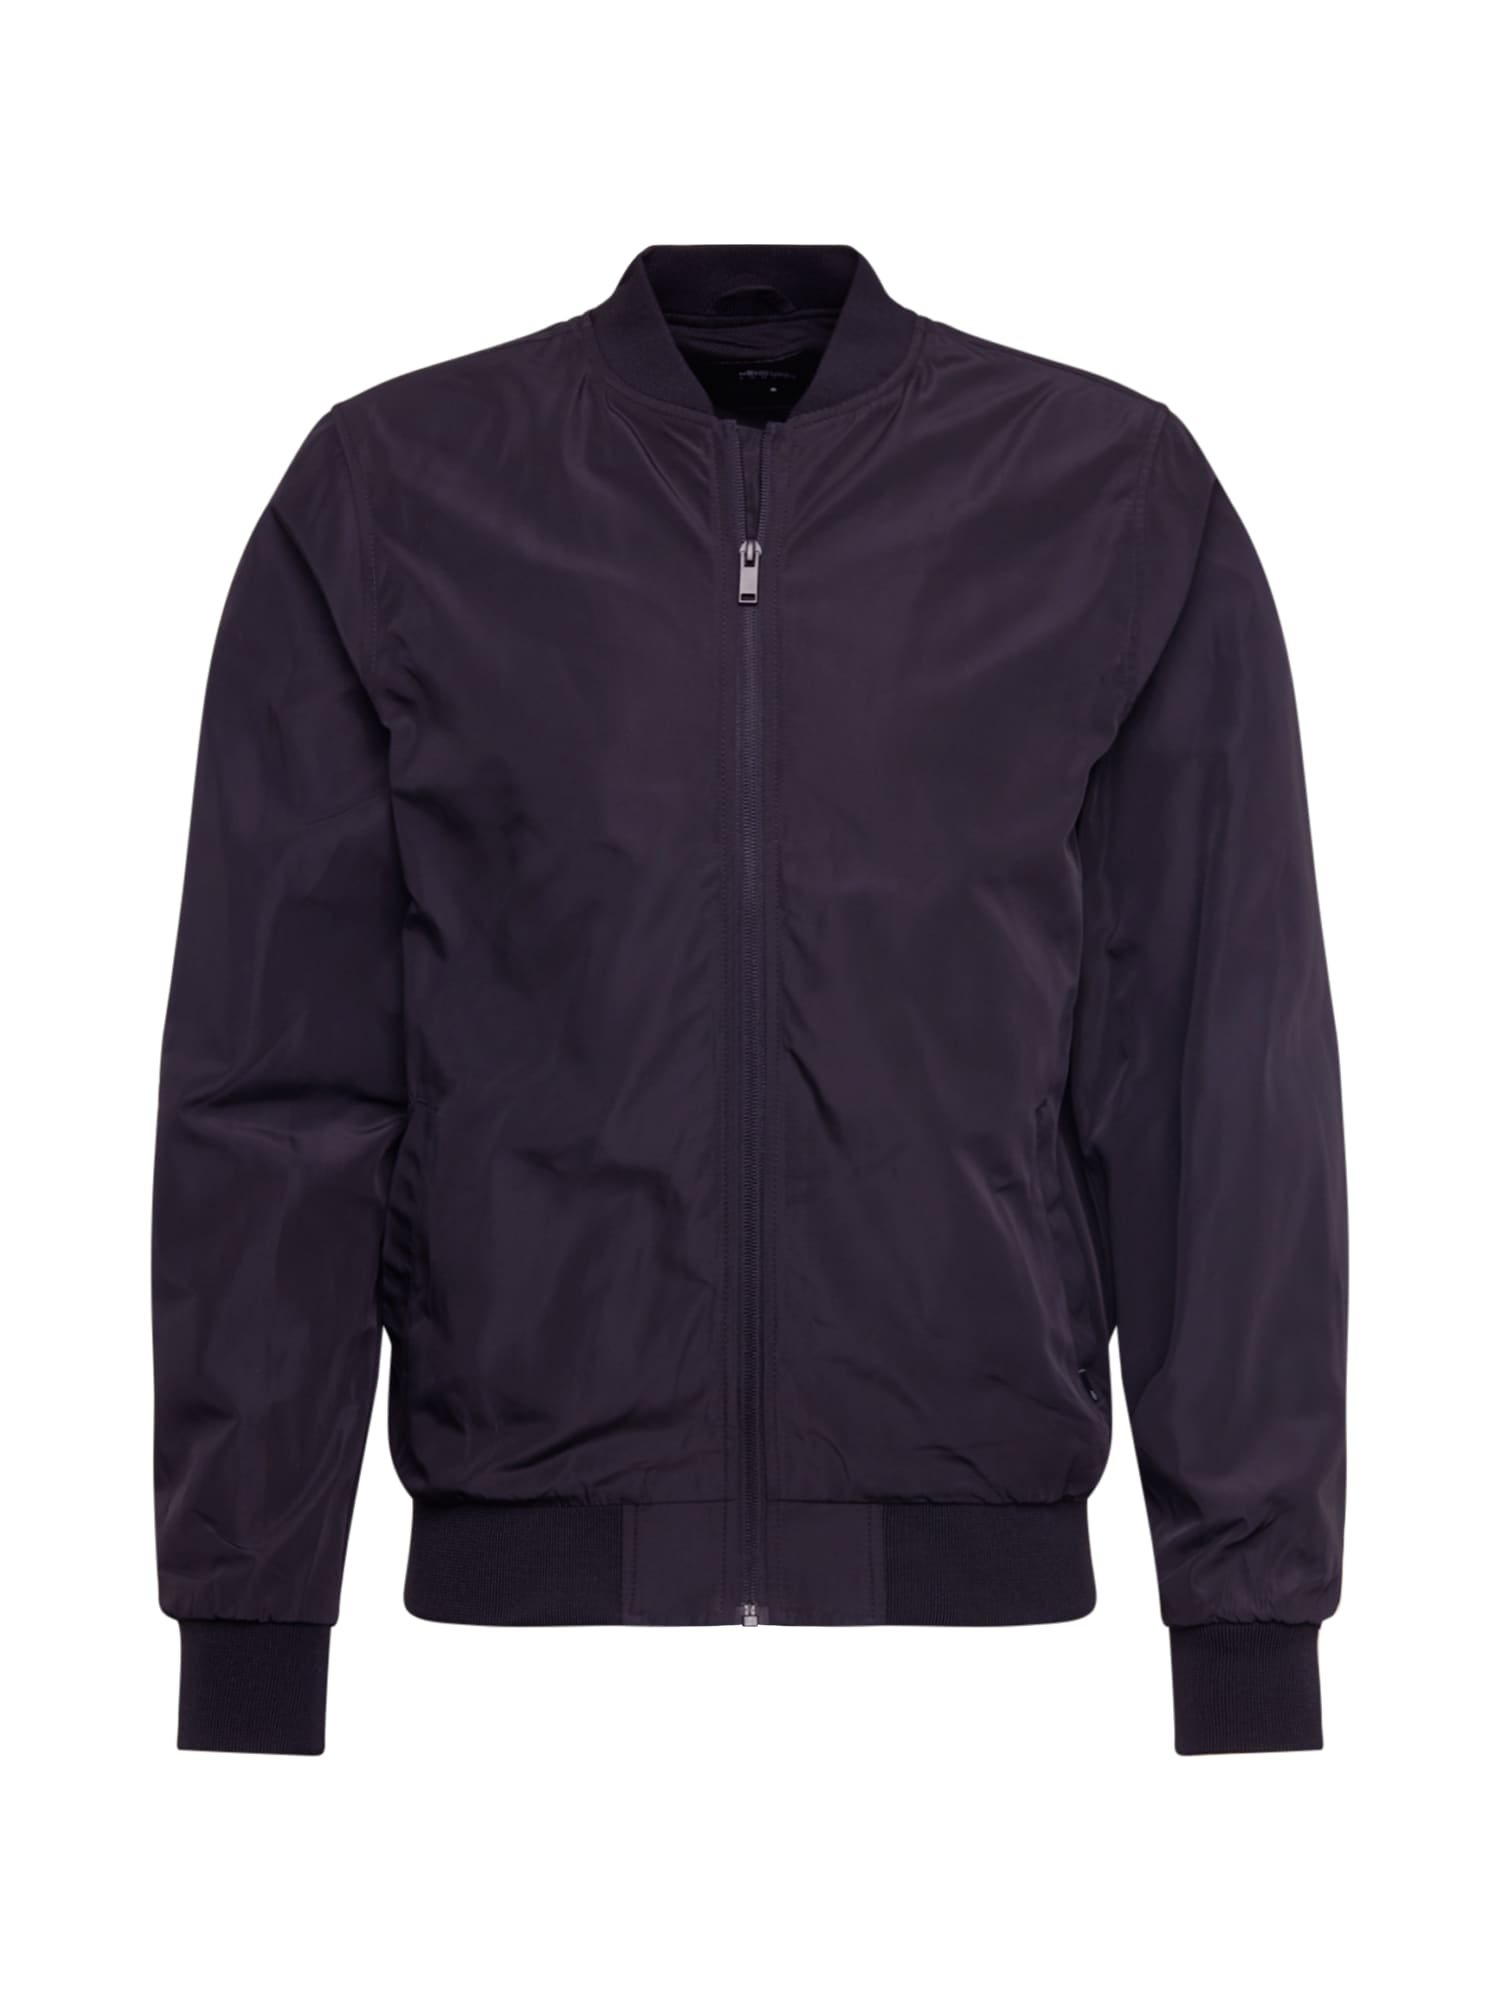 BURTON MENSWEAR LONDON Demisezoninė striukė 'core bomber all' juoda